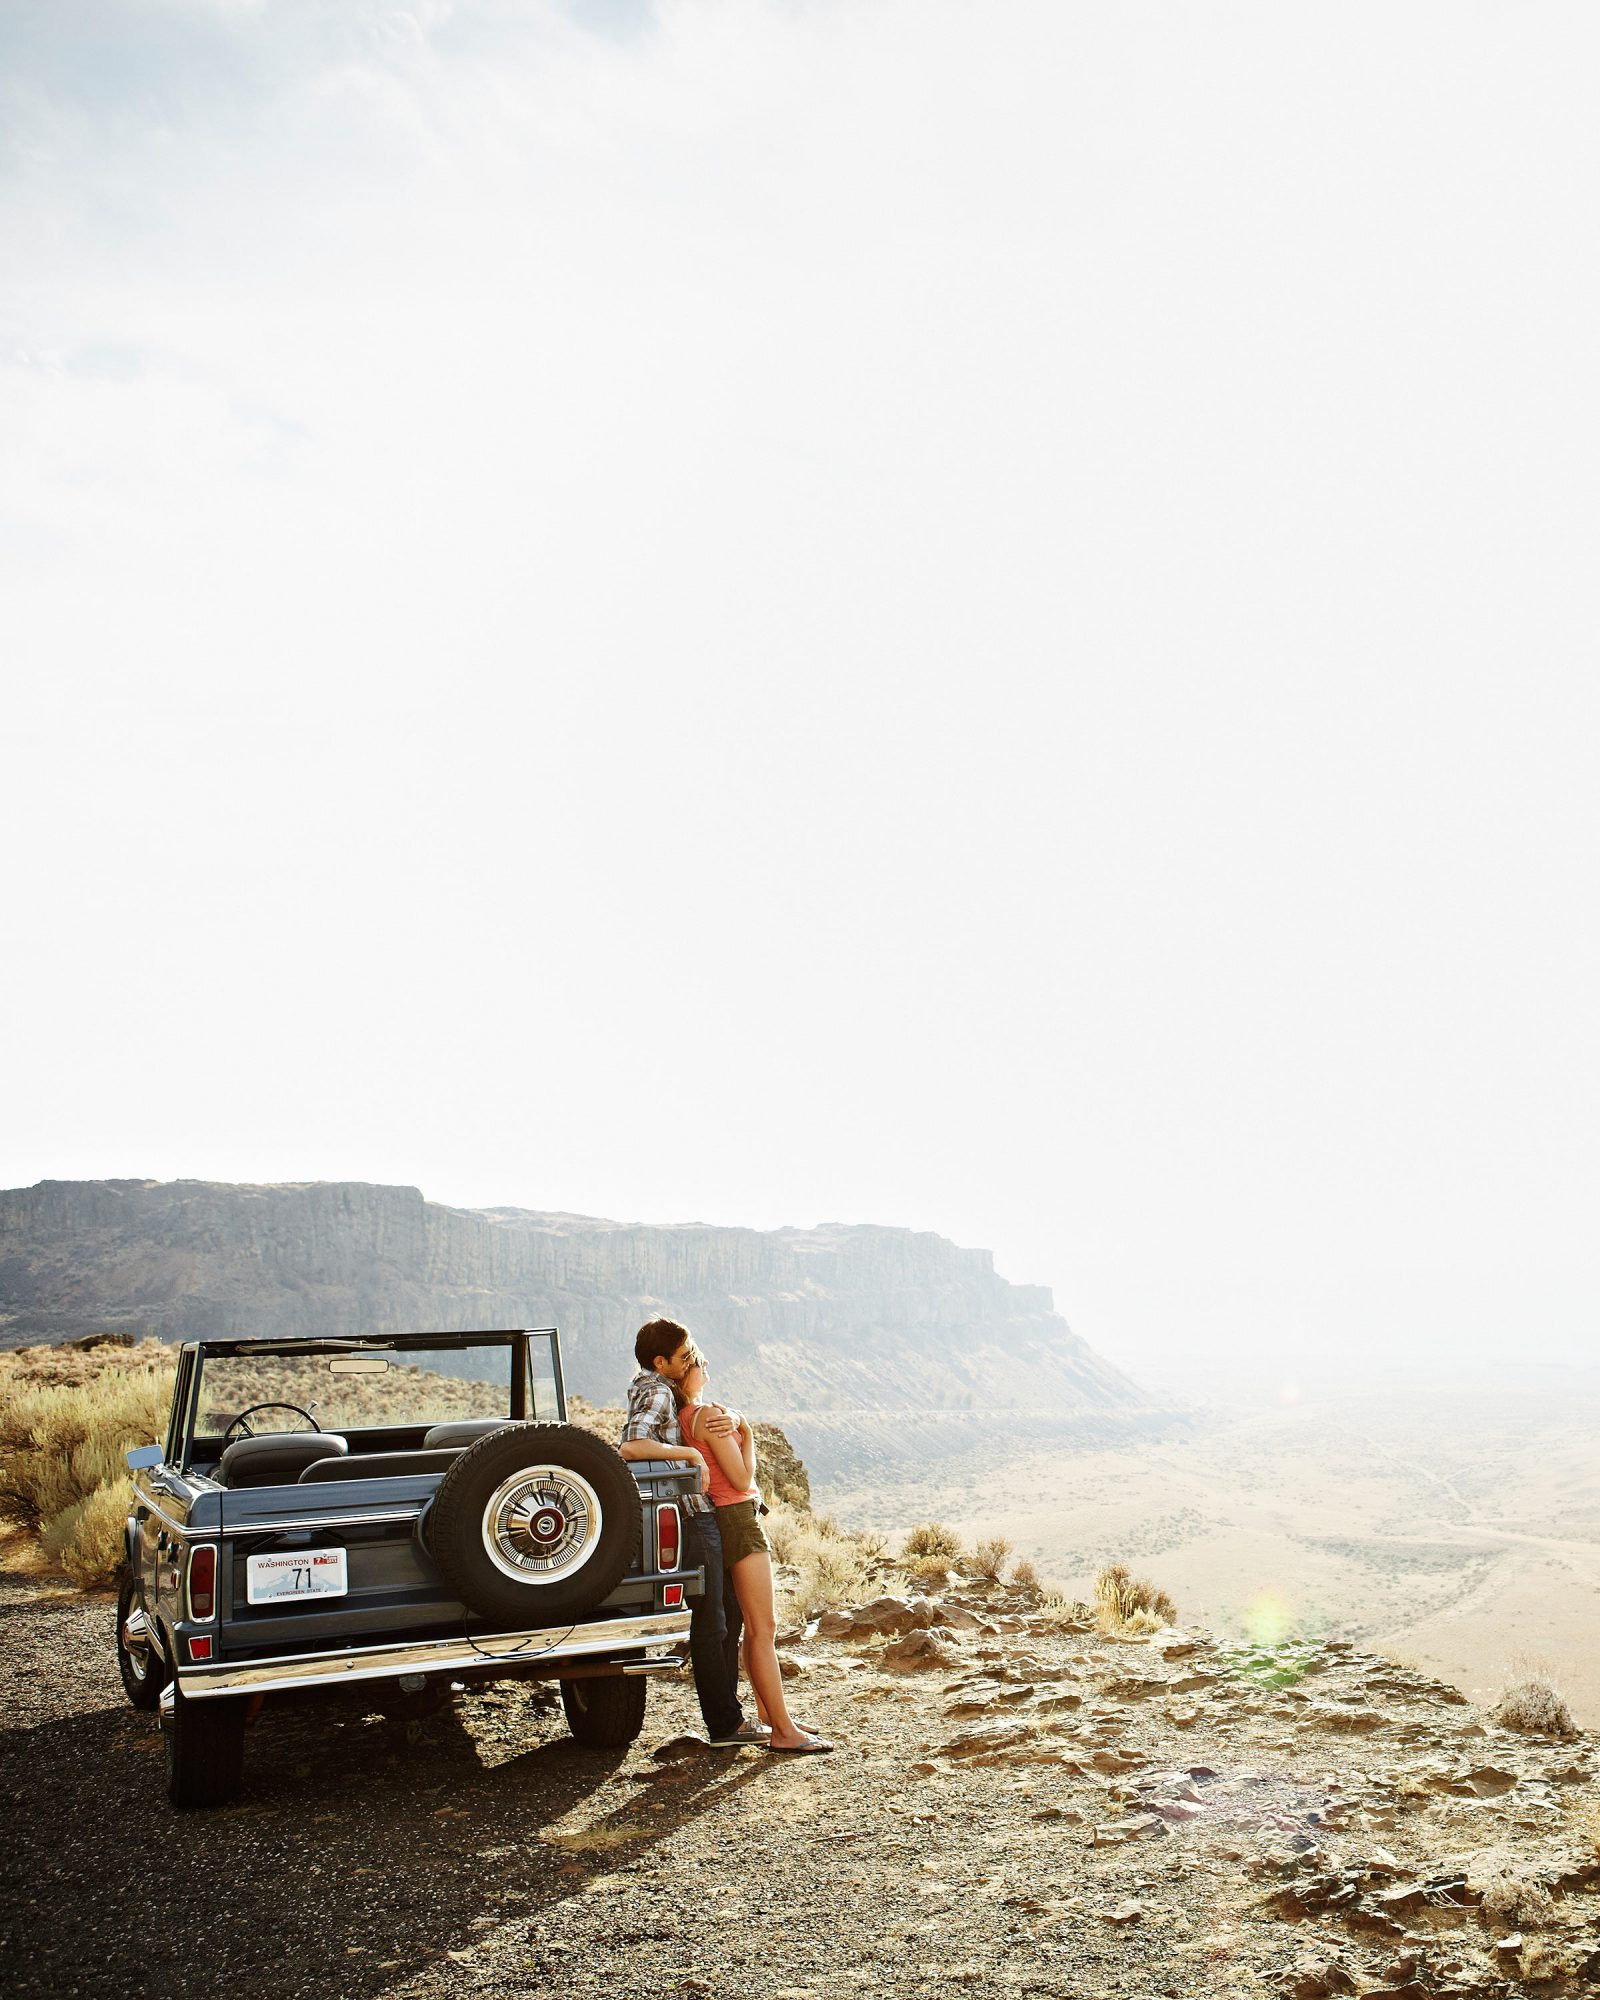 dreamy-drives-couple-resting-on-car-0216.jpg